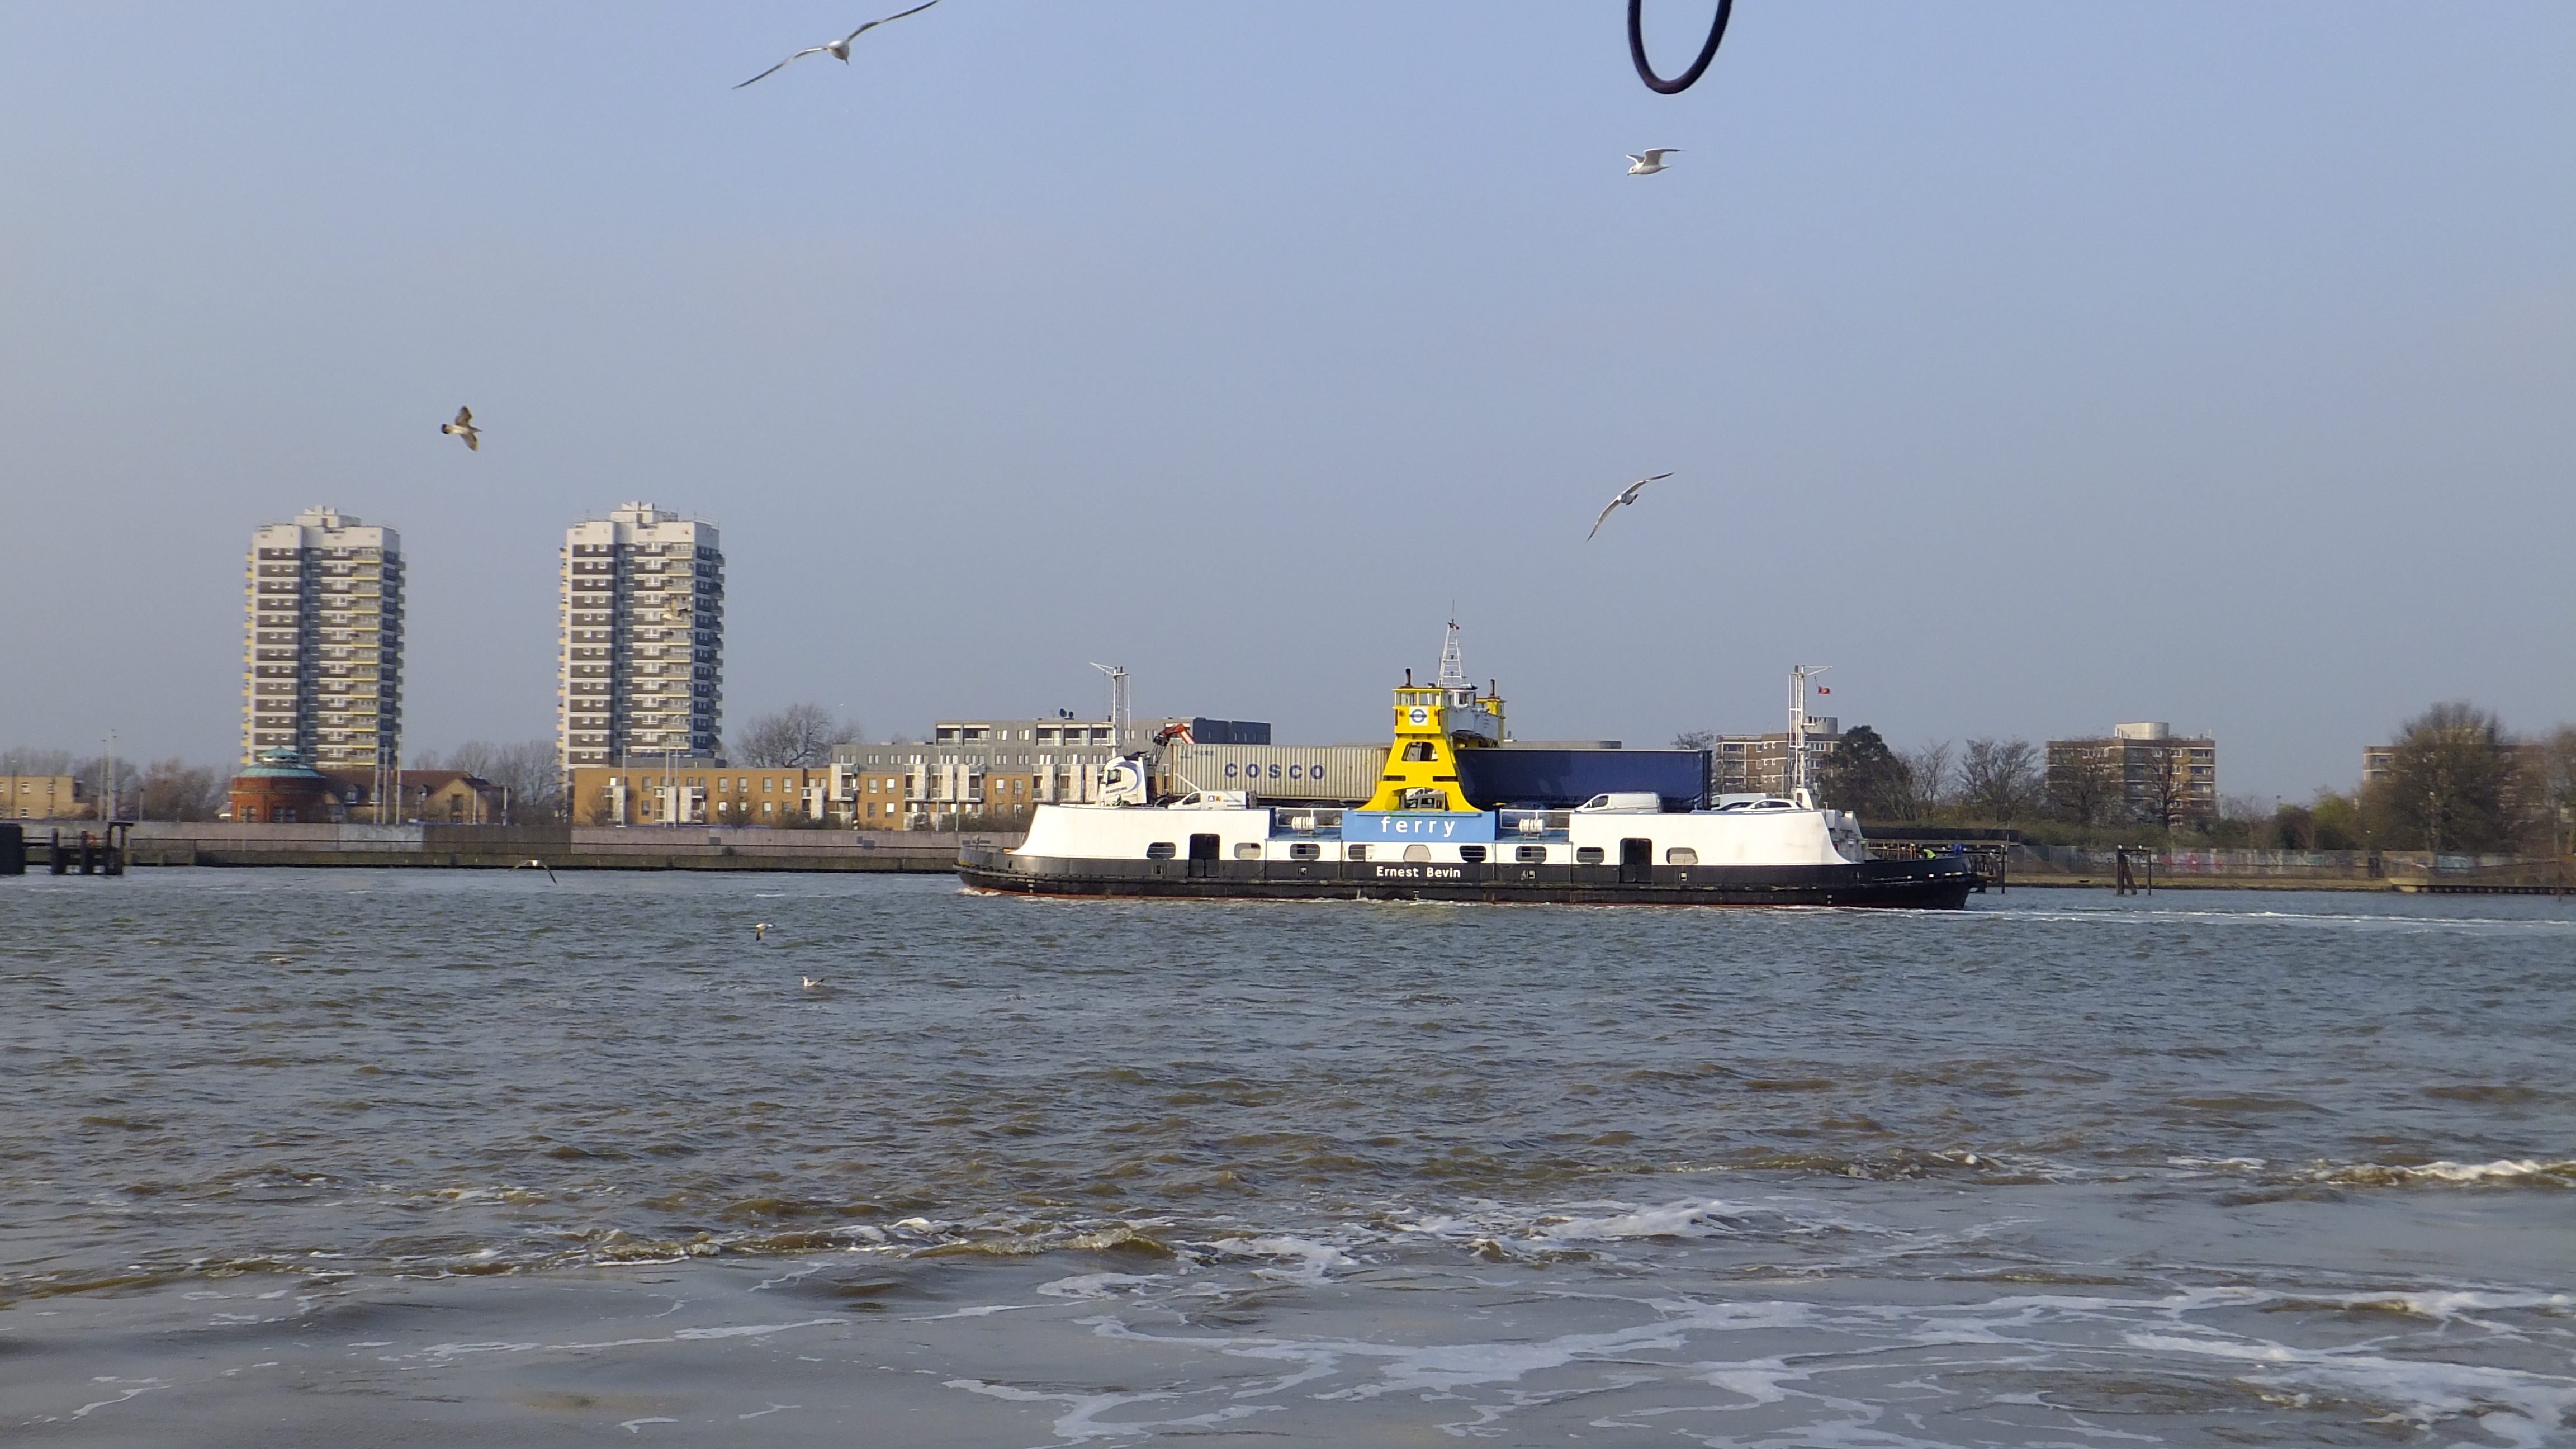 Goodbye Woolwich Free Ferry? A further look into Silvertown Tunnel plans